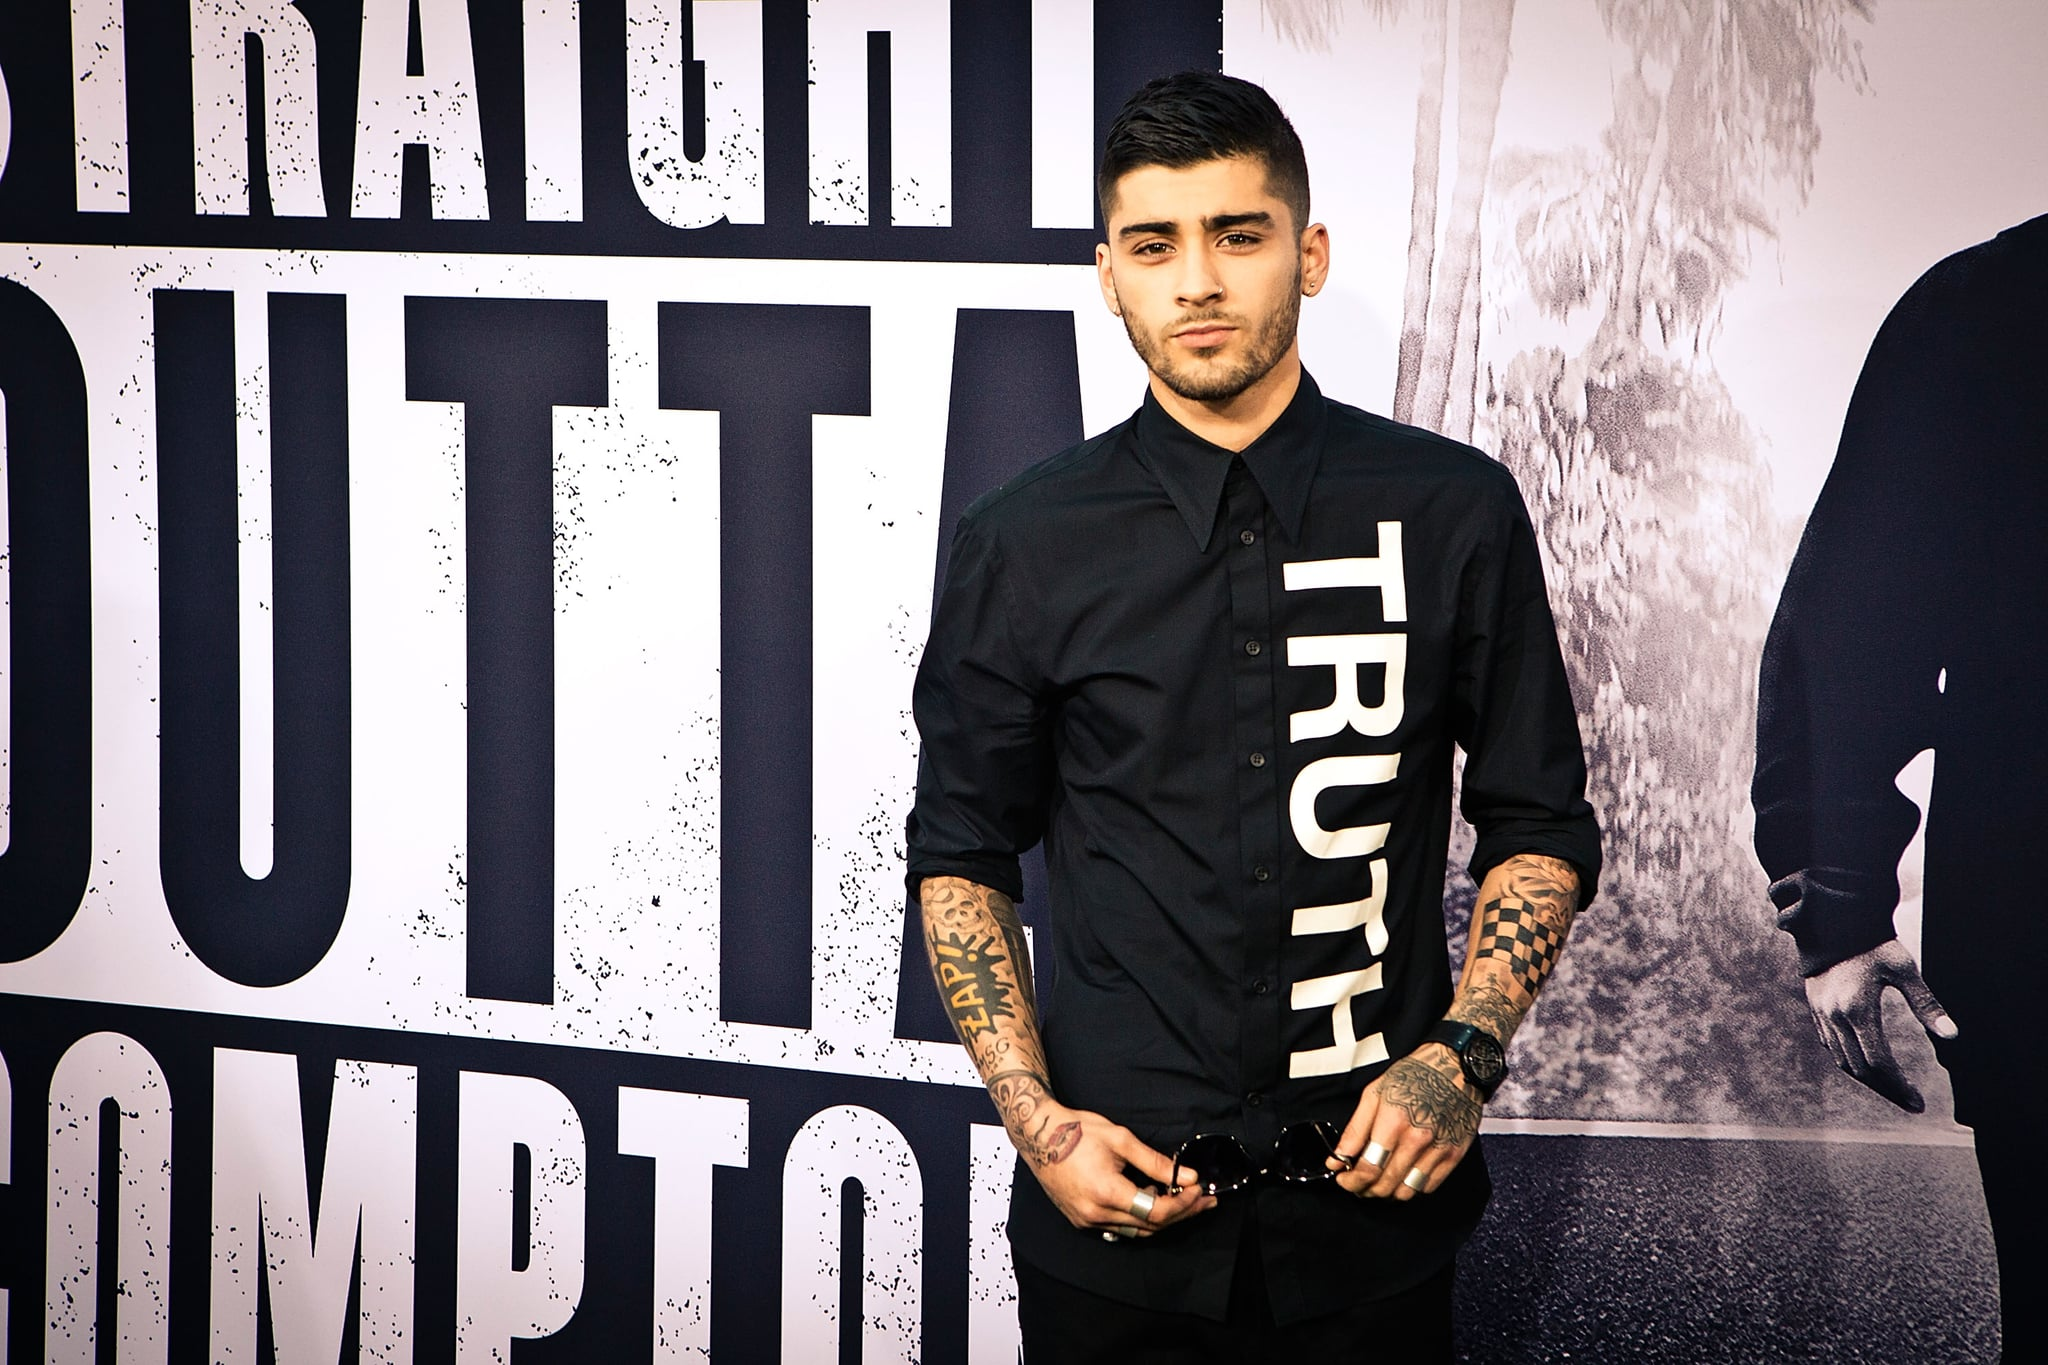 LOS ANGELES, CA - AUGUST 10:  (EDITOR'S NOTE: Image has been processed using digital filters) Zayn Malik arrives for Universal Pictures and Legendary Pictures' premiere of